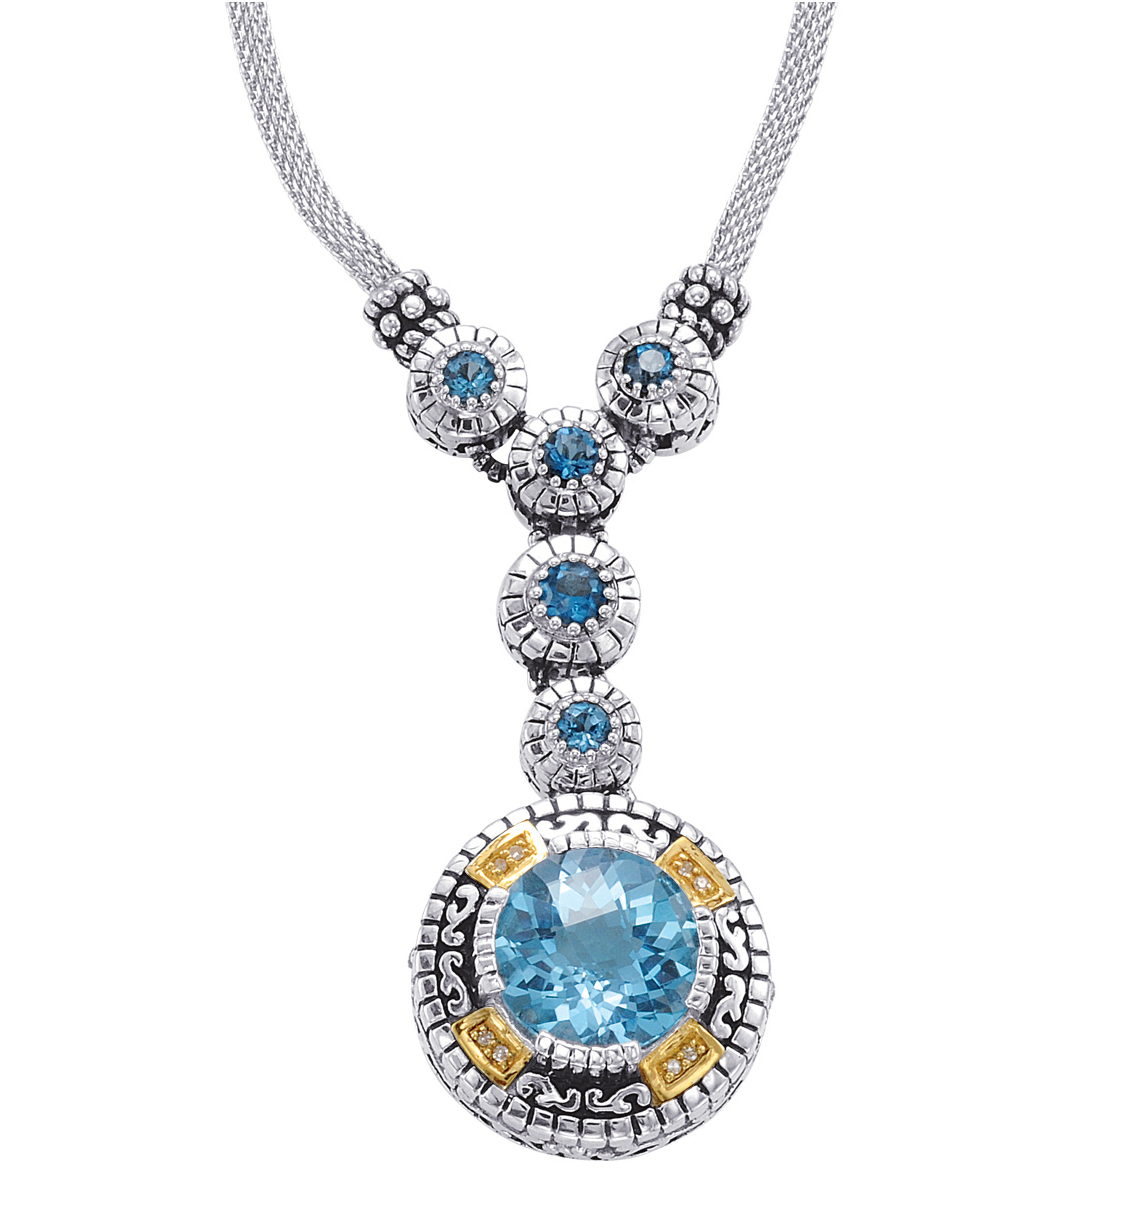 Alesandro Menegati 14K Accented Sterling Silver Necklace with Blue Topaz and Diamonds . Price: $629.20